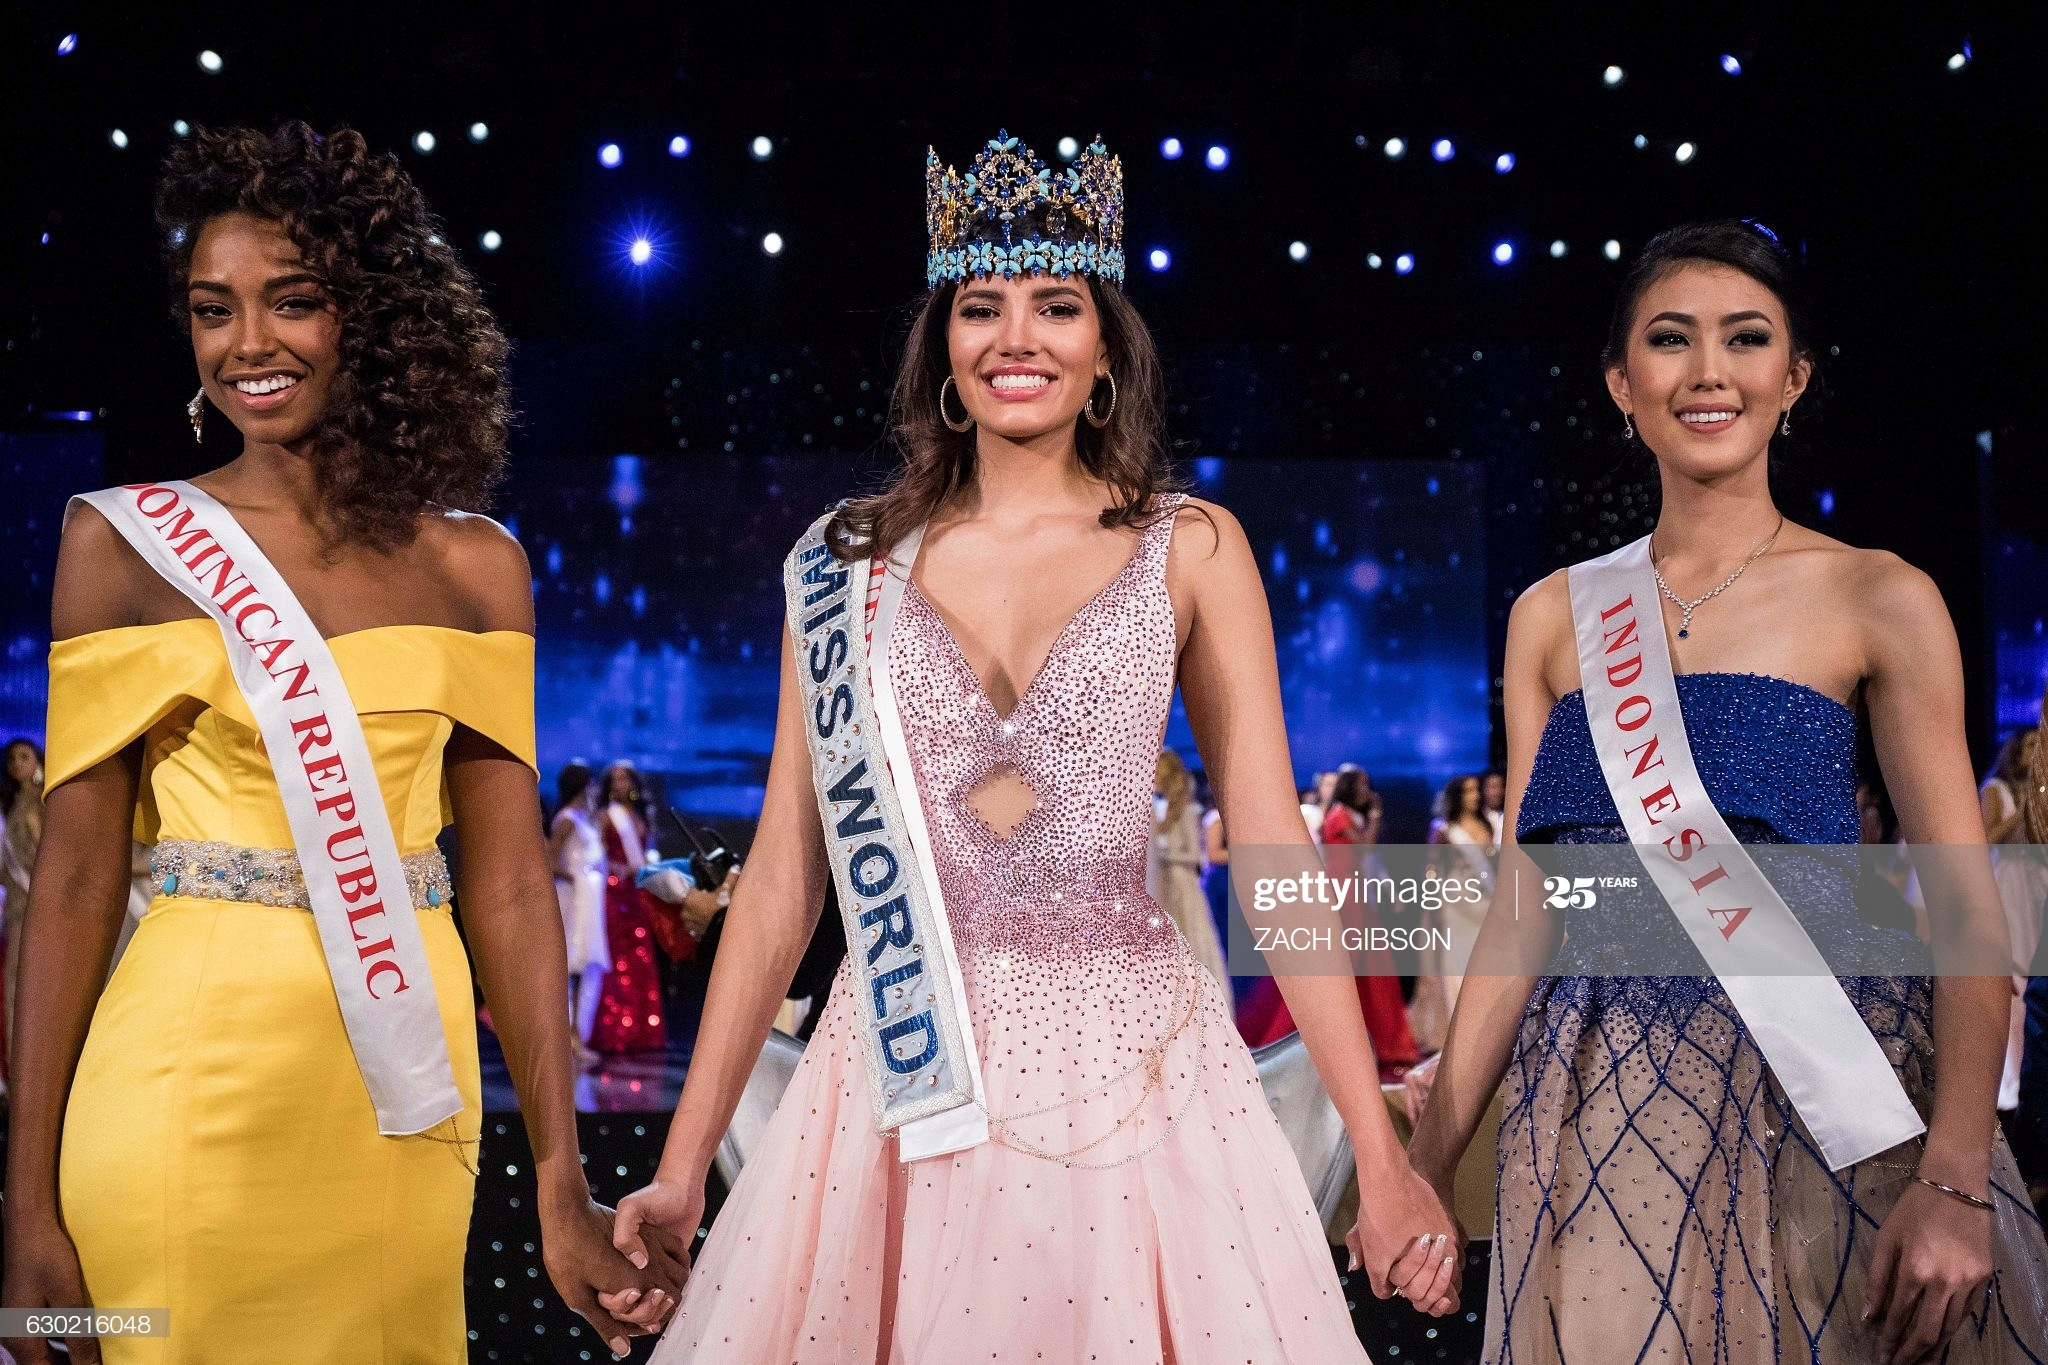 stephanie del valle, miss world 2016. First-11